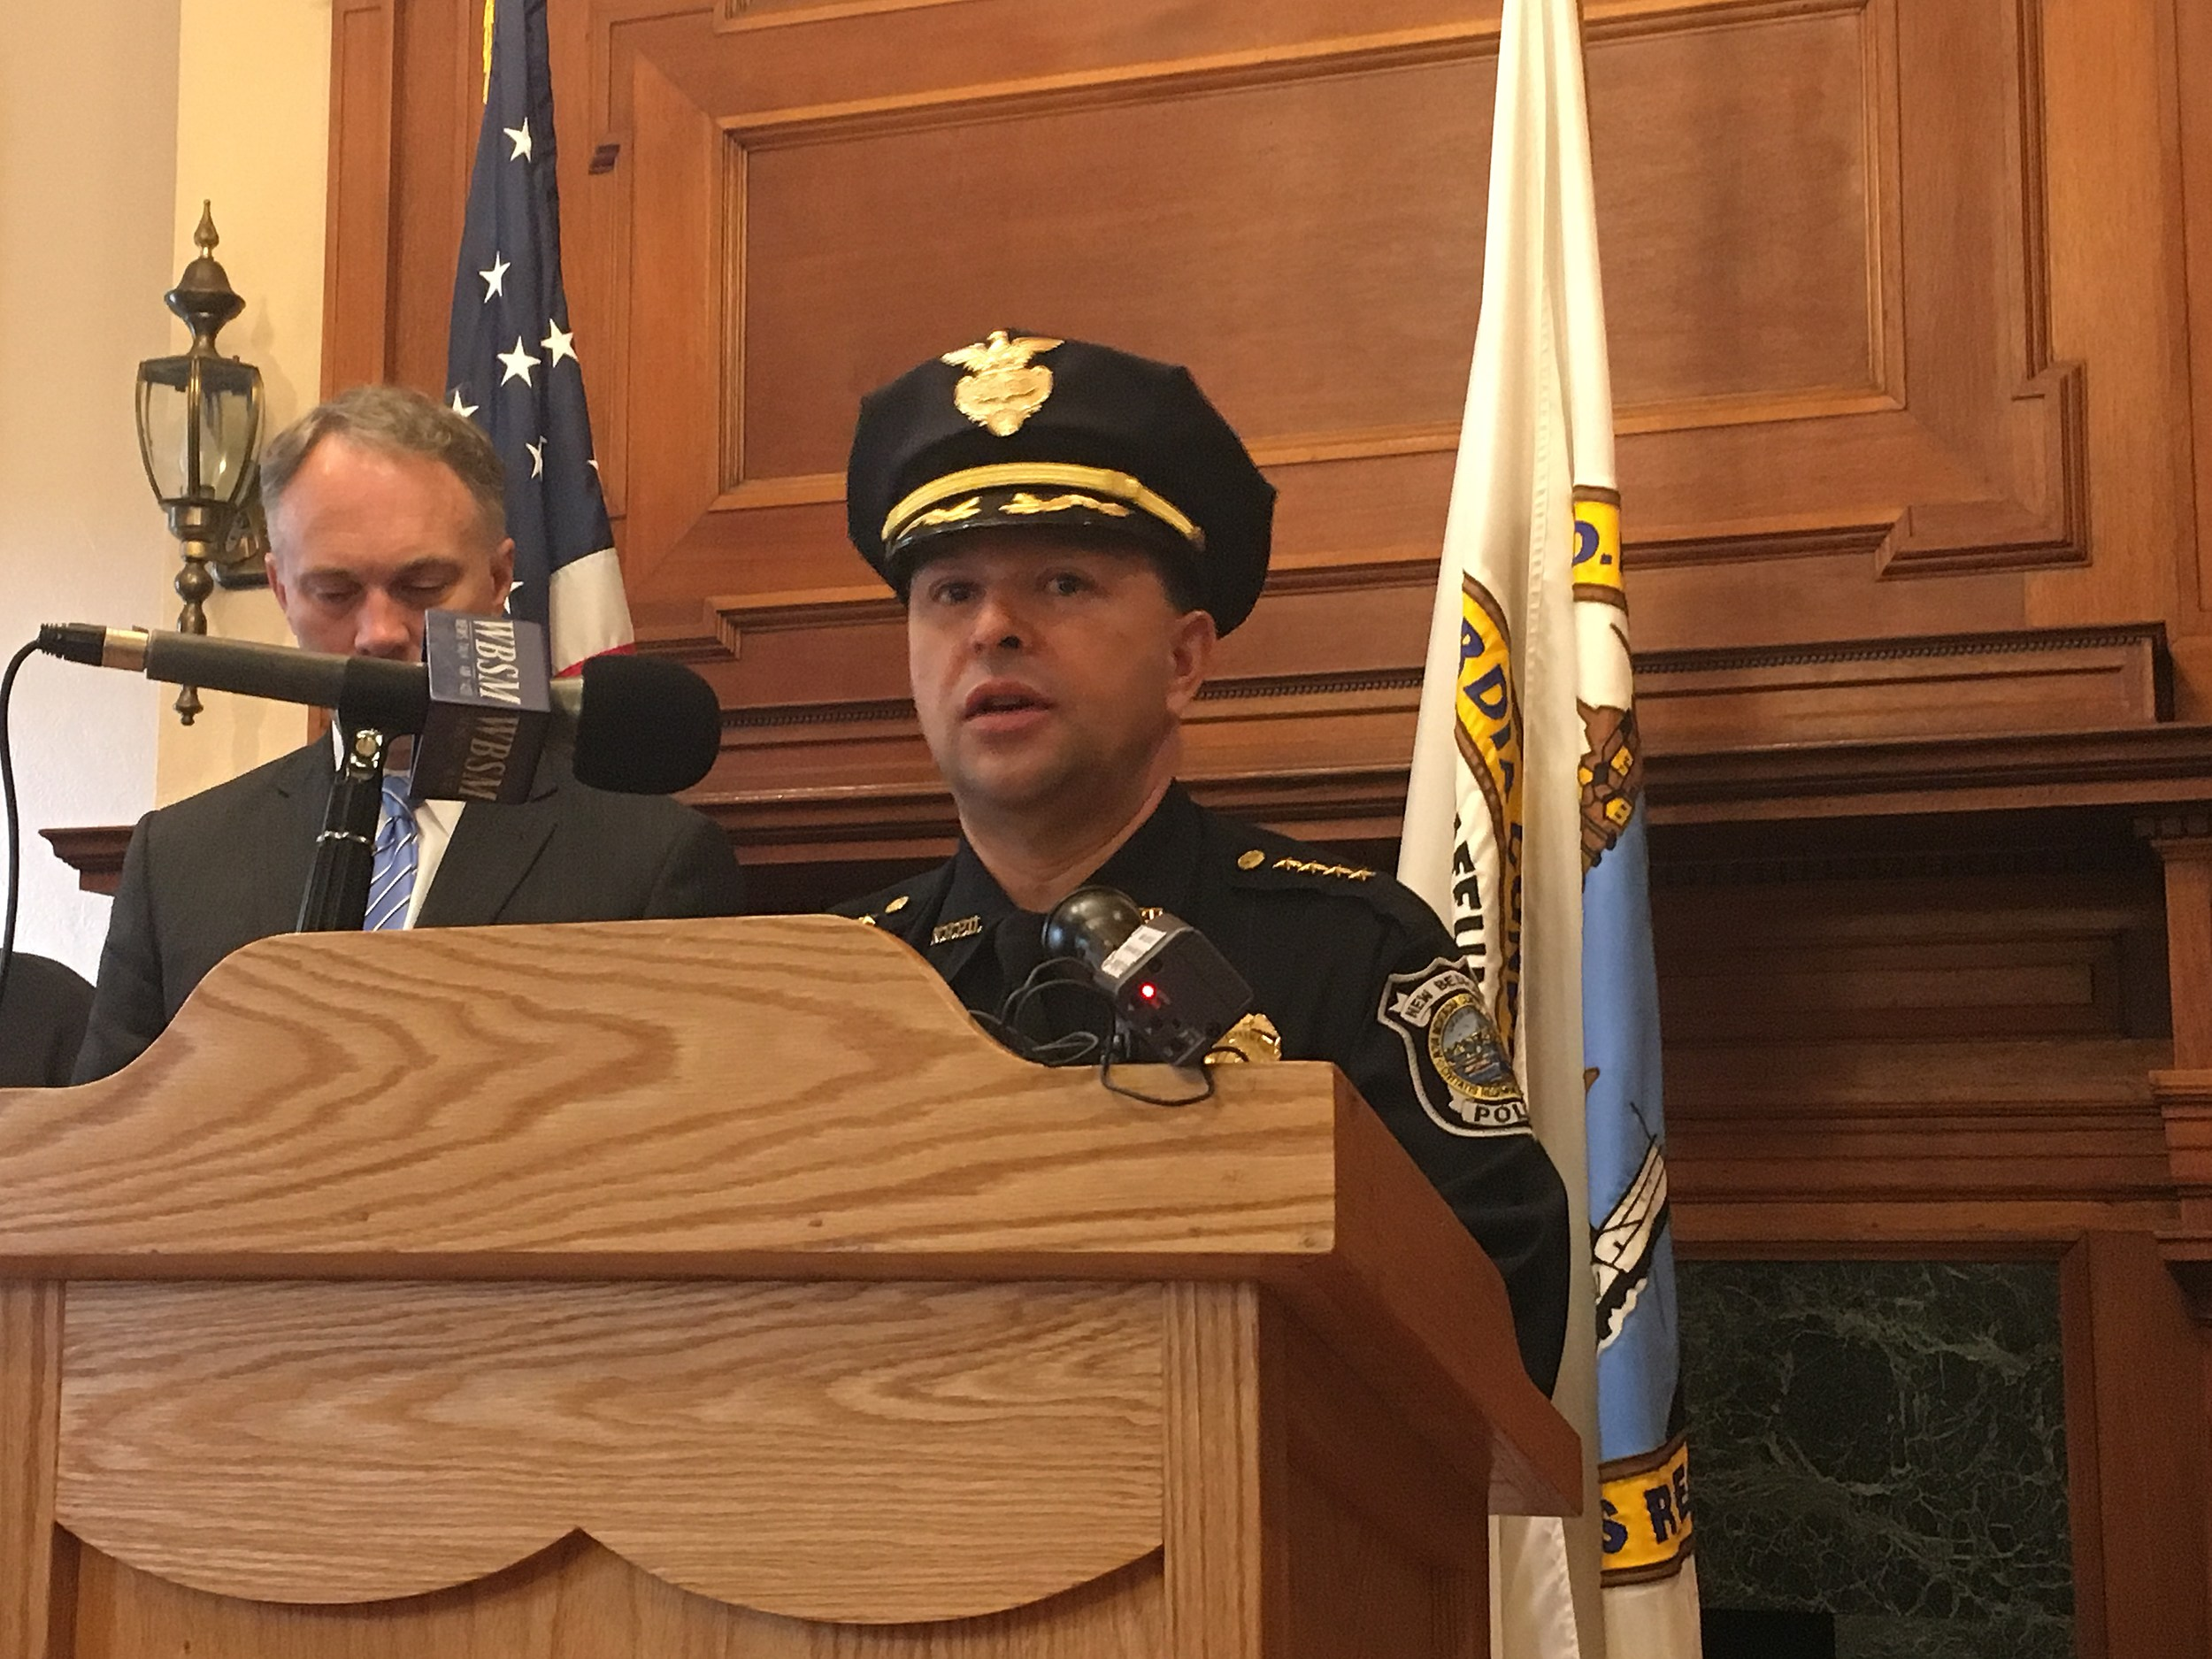 New Bedford Police Drama [OPINION]